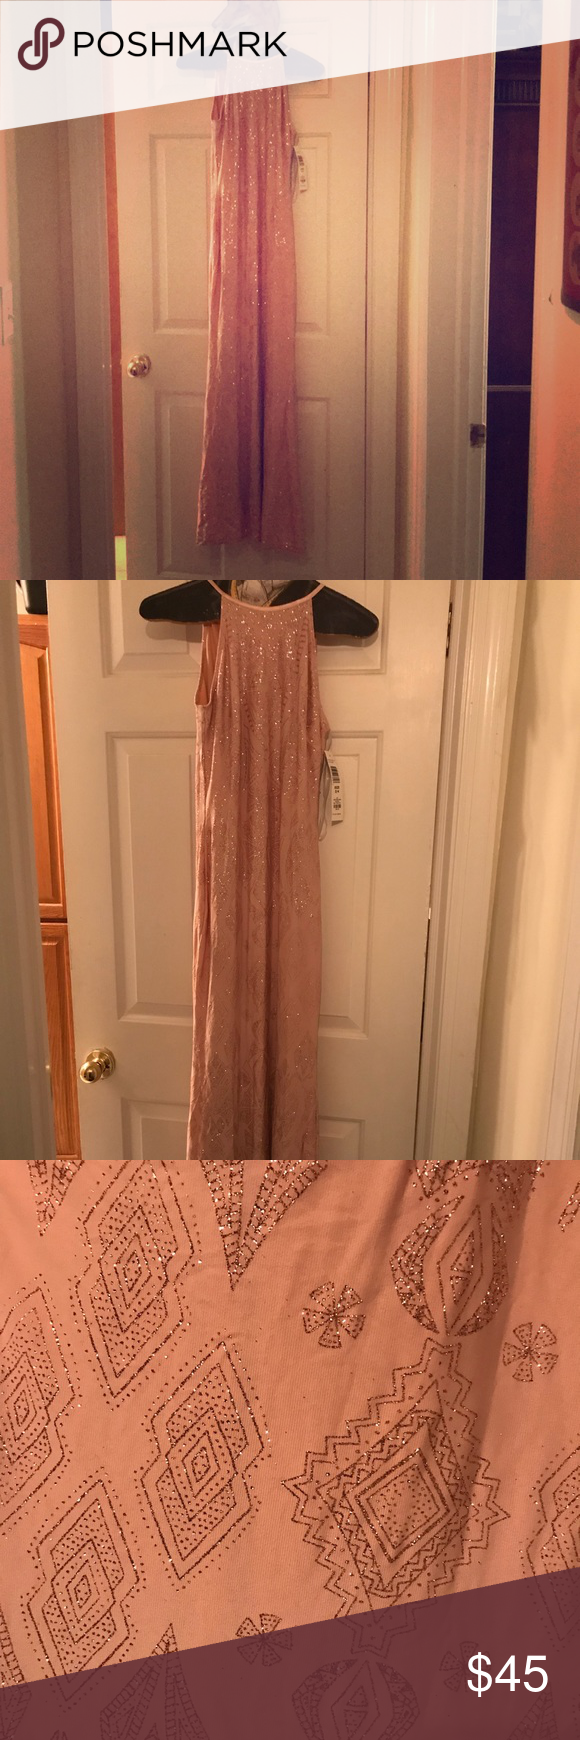 Gown Gowns Pink Gowns Wedding Guest Dress [ 1740 x 580 Pixel ]